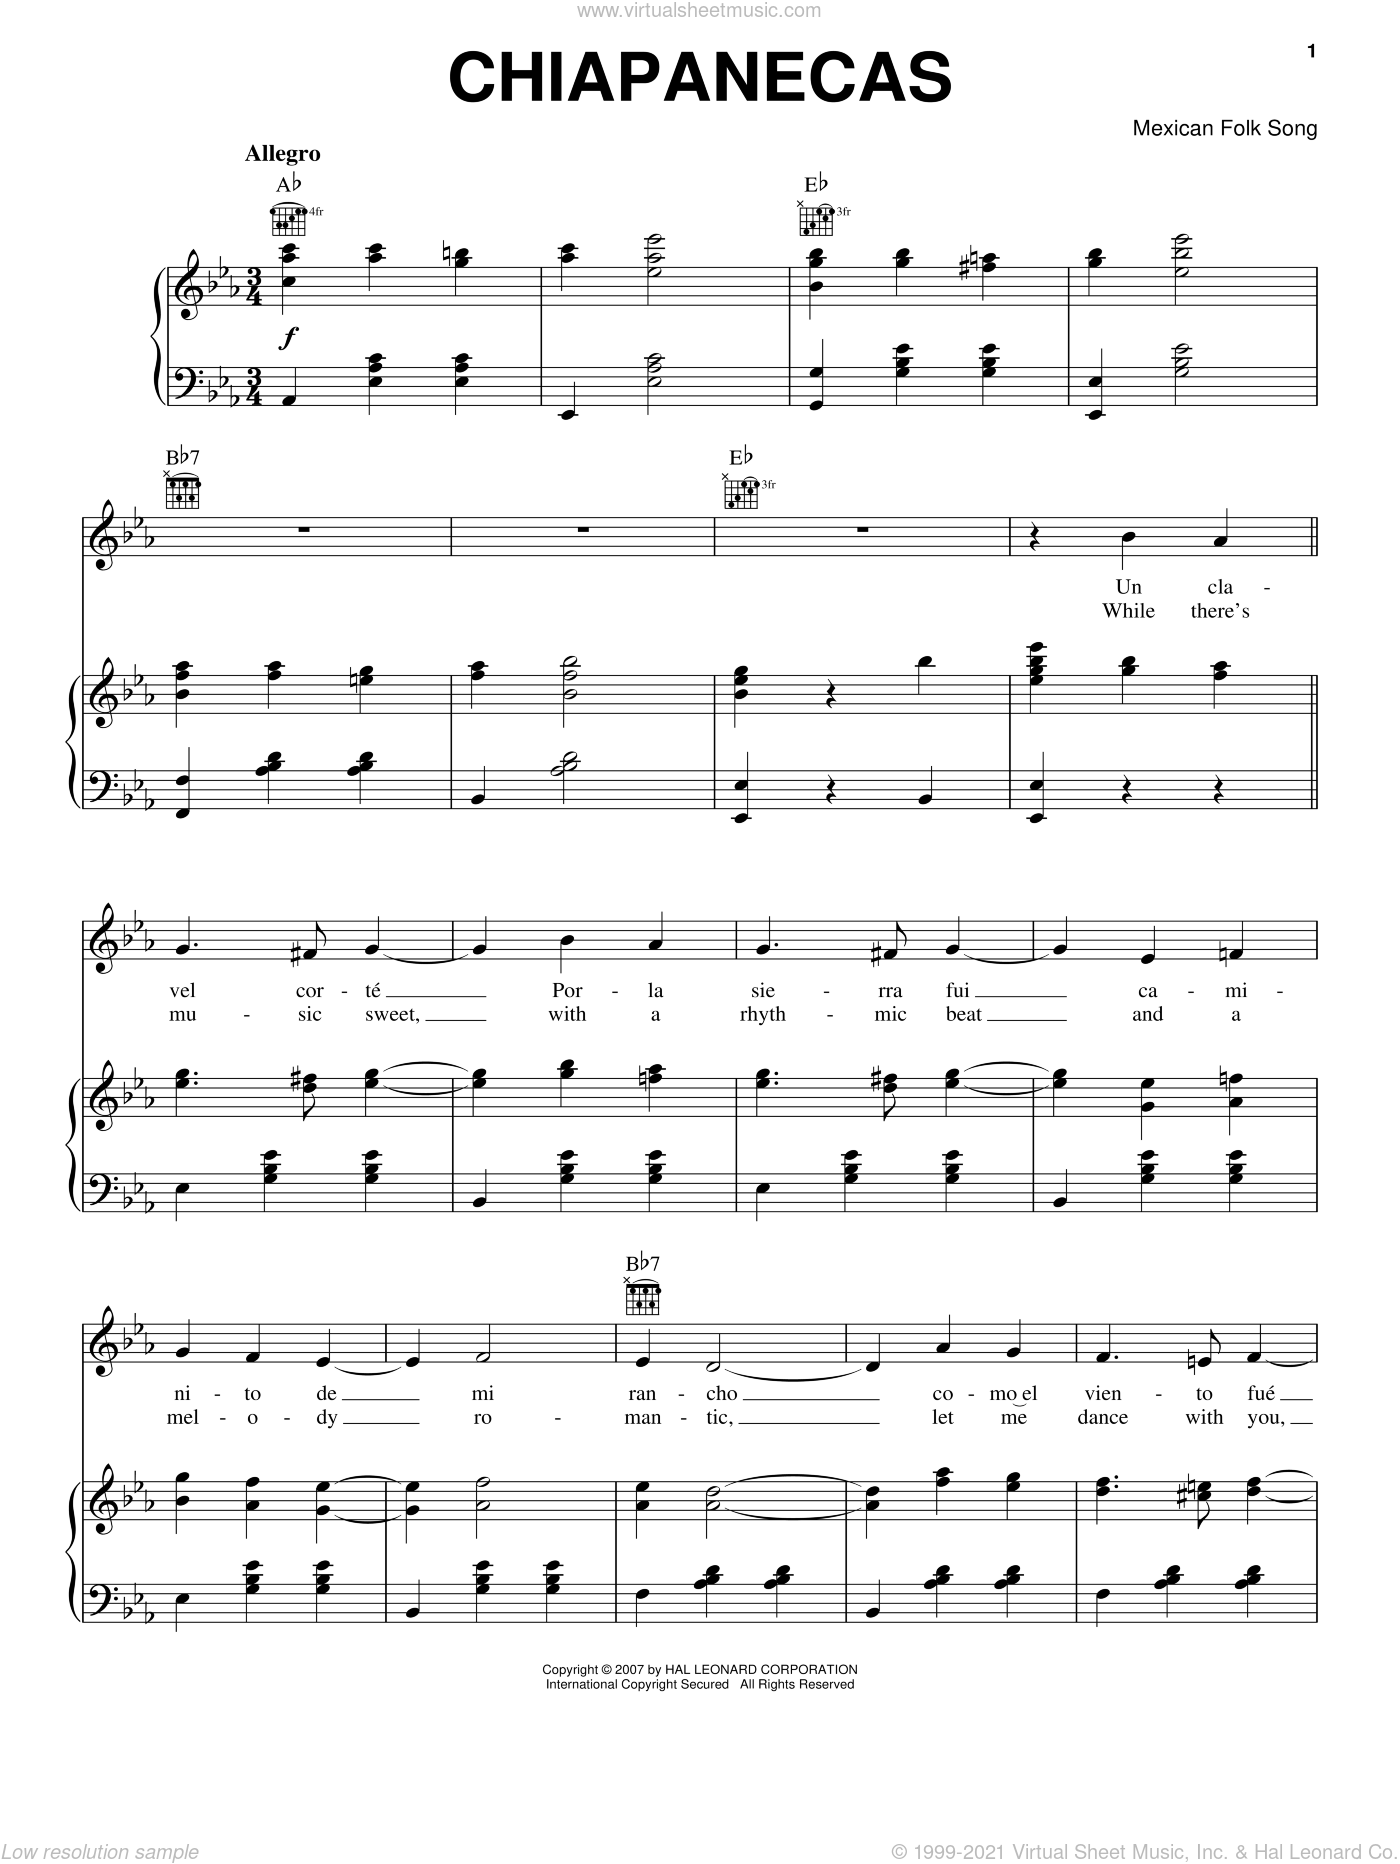 Chiapanecas sheet music for voice, piano or guitar